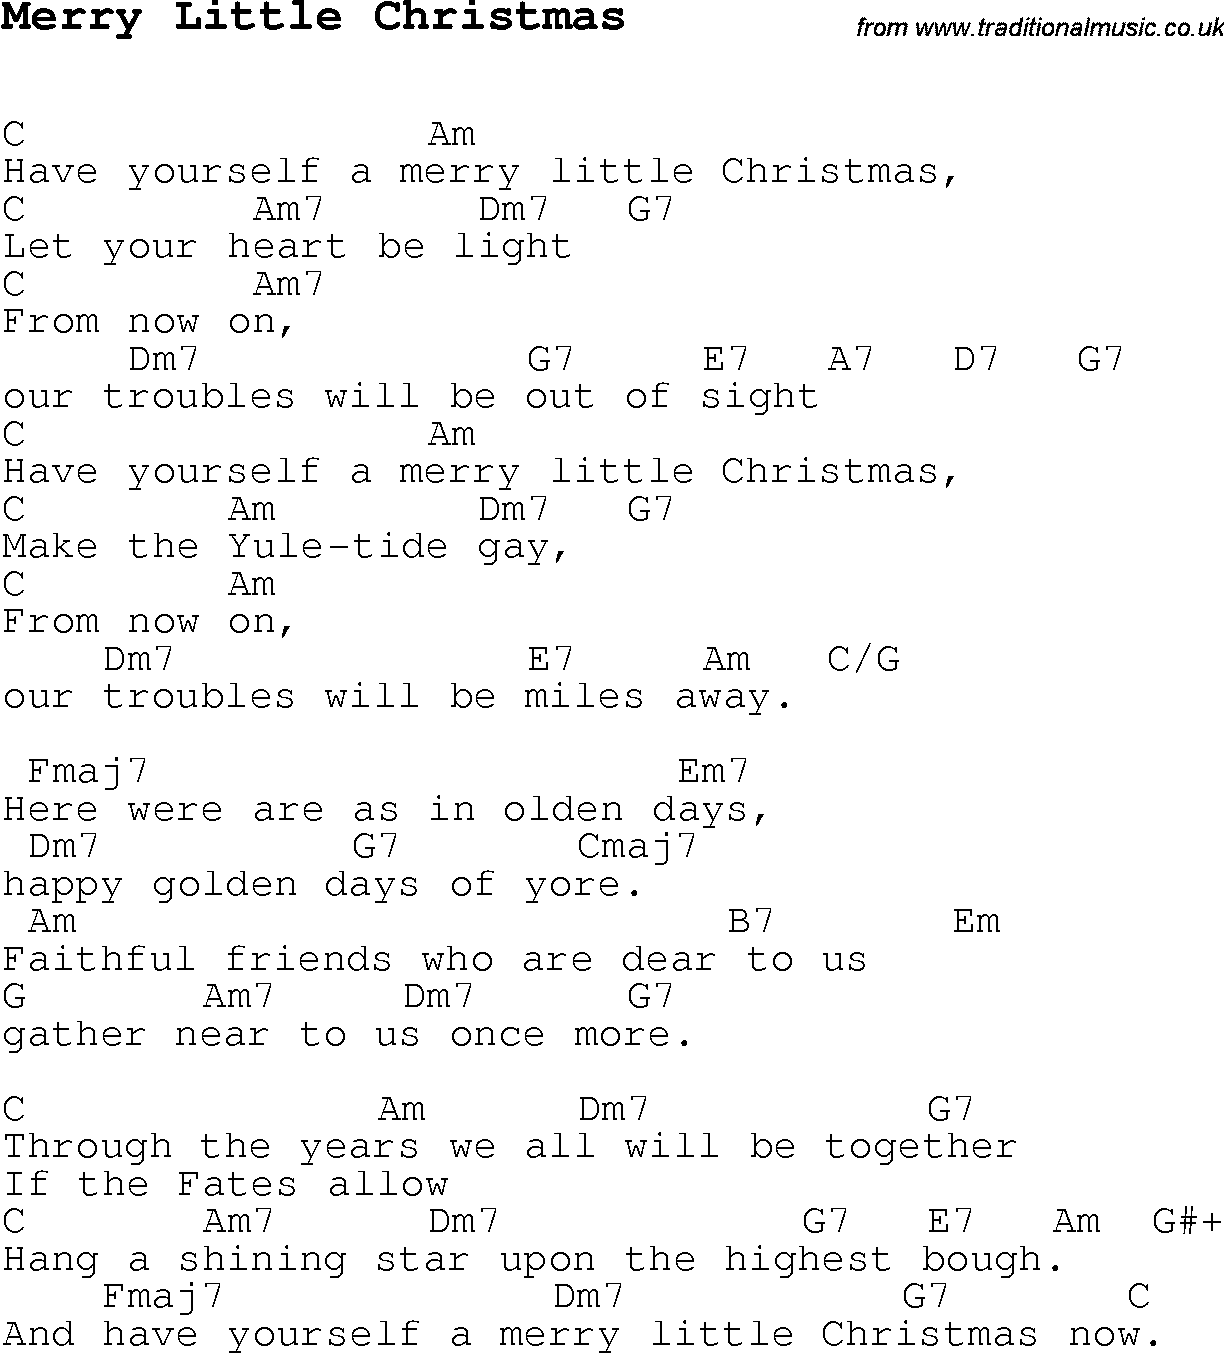 Merry Little Christmas Lyrics.Christmas Carol Song Lyrics With Chords For Merry Little